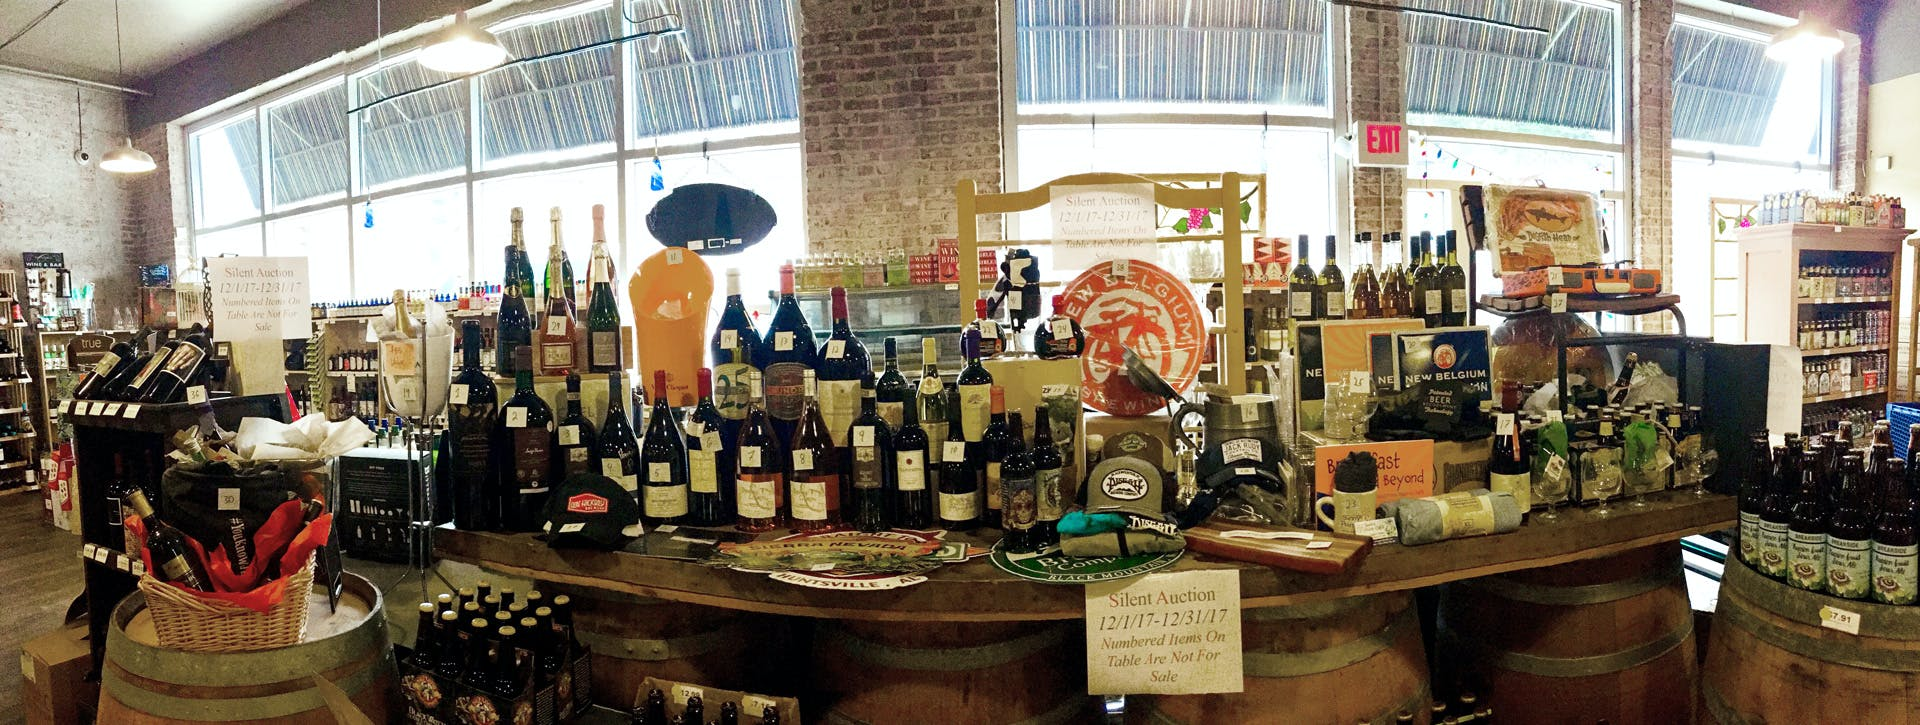 2018-Appalachian-Vintner-Silent-Auction